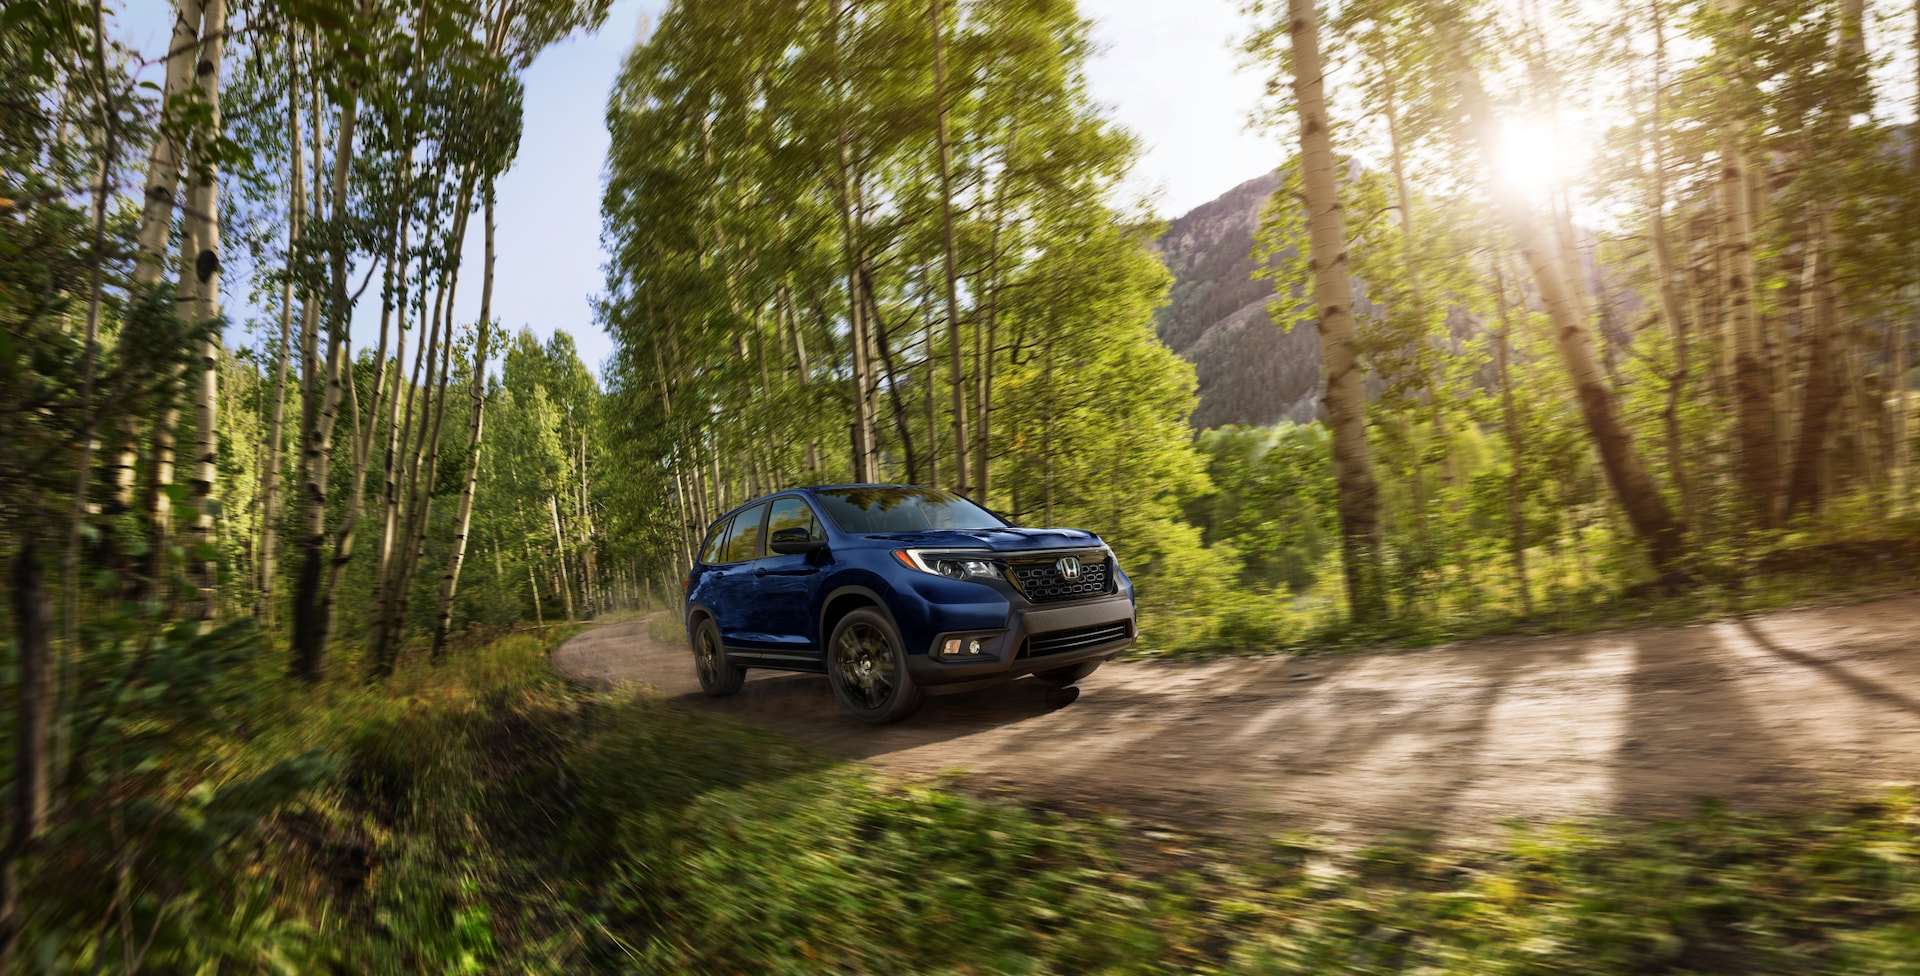 Boch Honda is a Car Dealership near Medfield, MA | Blue 2020 Honda CR-V driving through woods